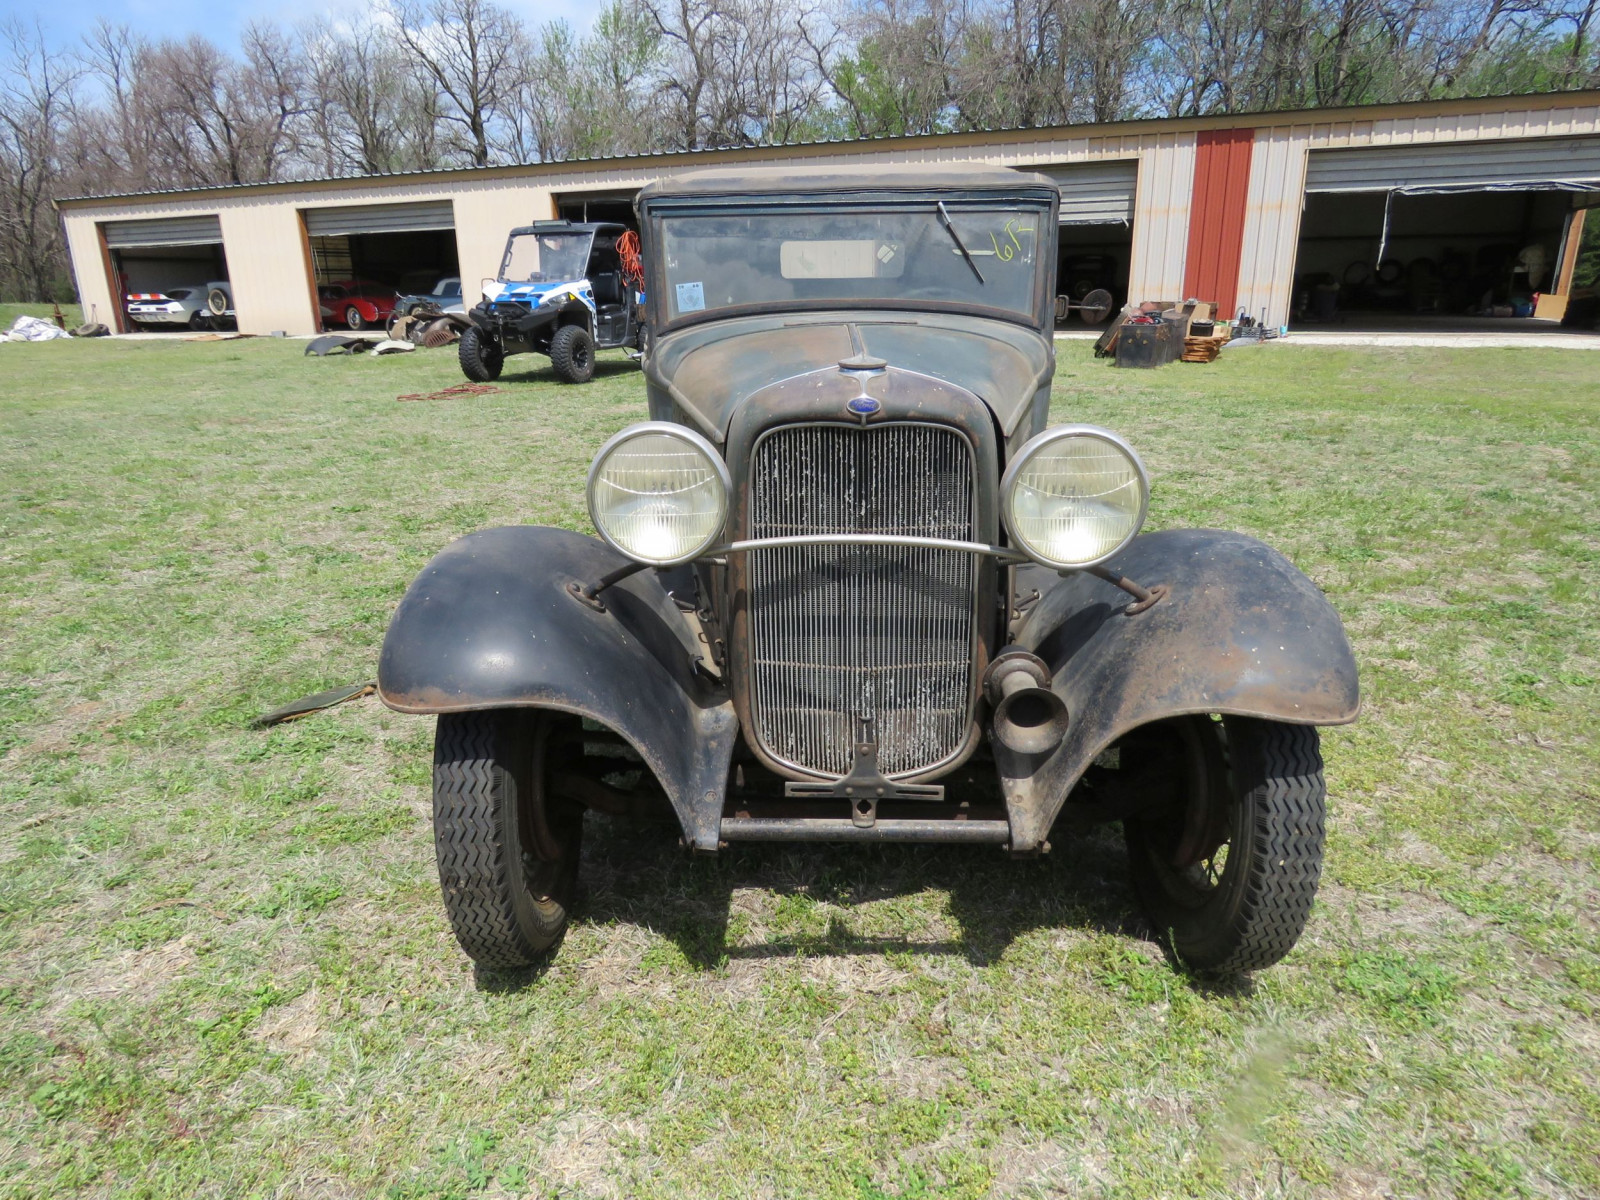 1932 FORD SPORT COUPE ORIGINAL PROJECT - Image 2